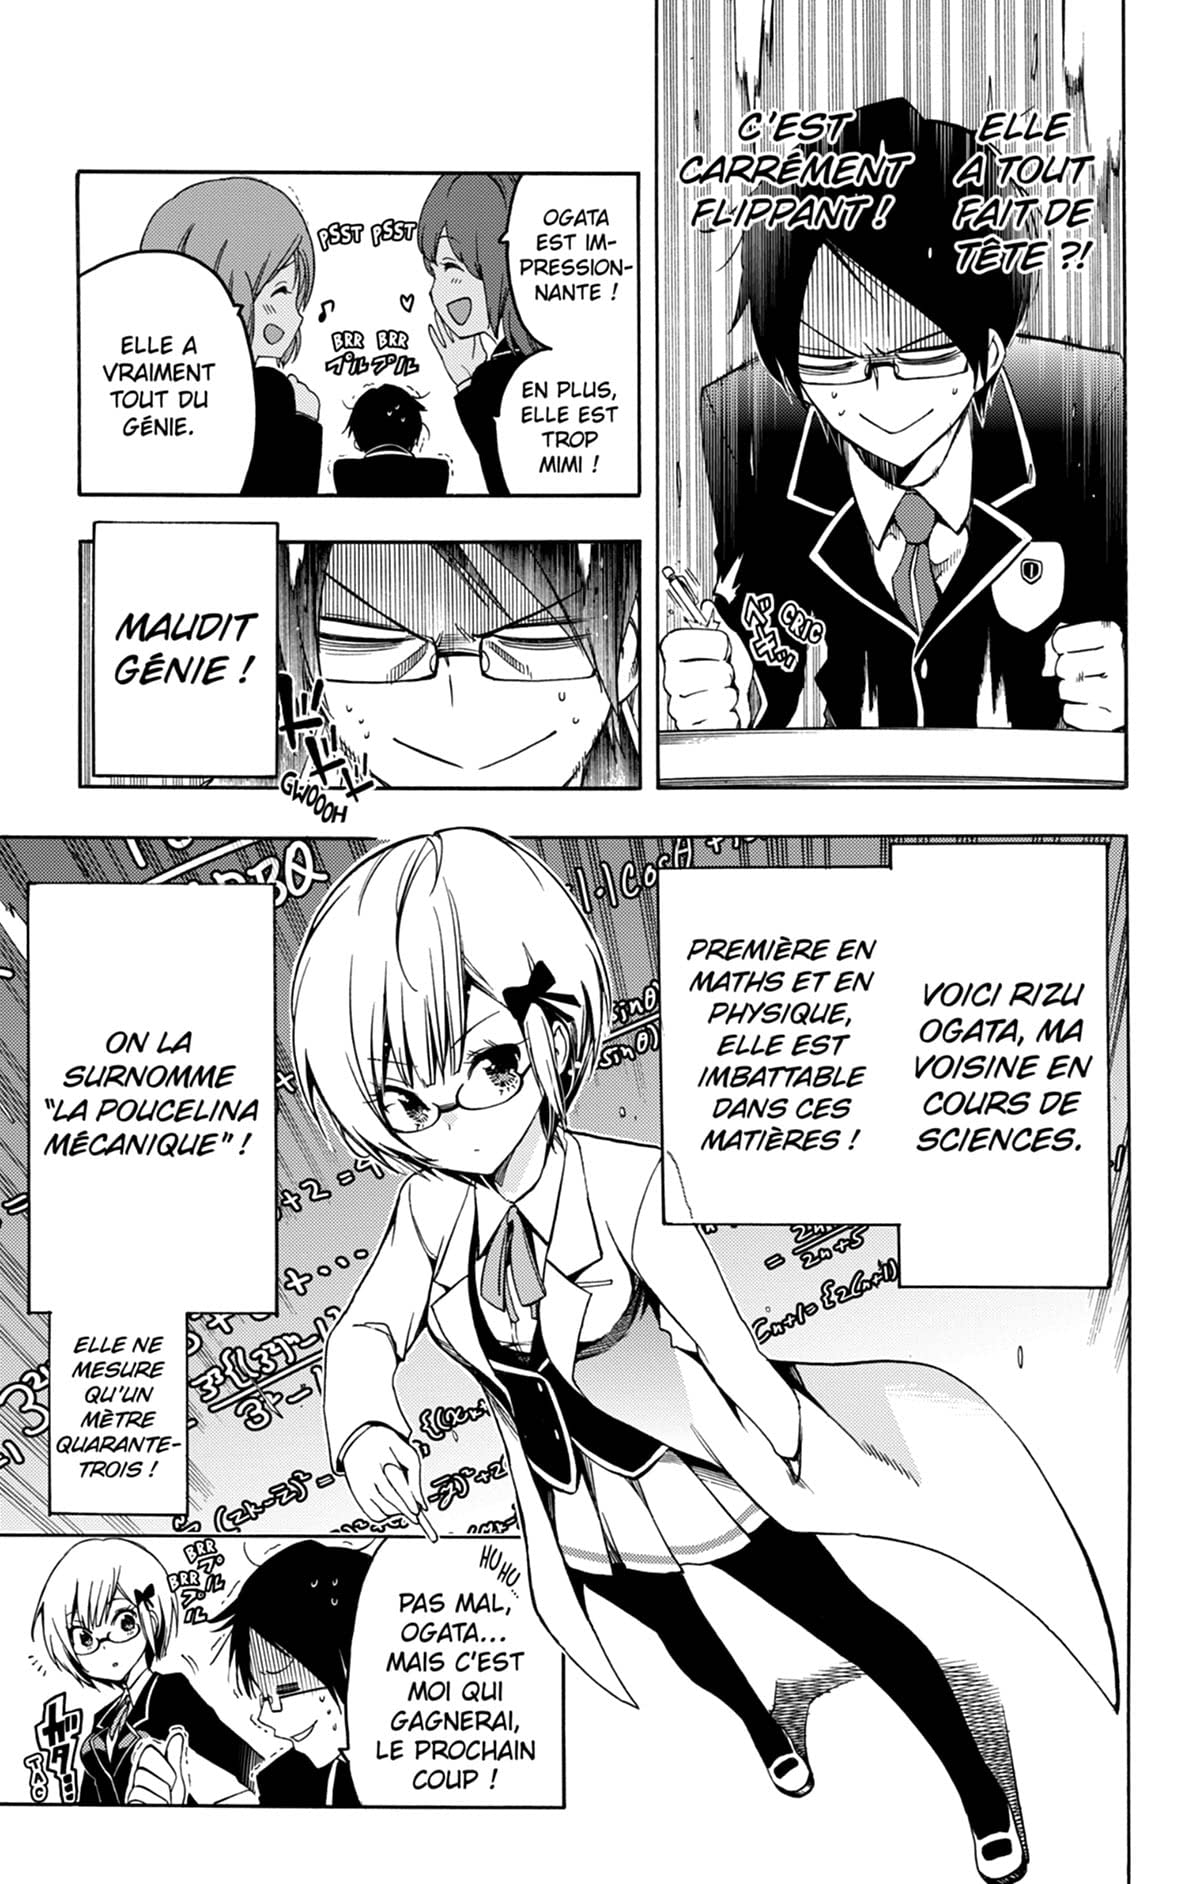 We never learn Vol. 1